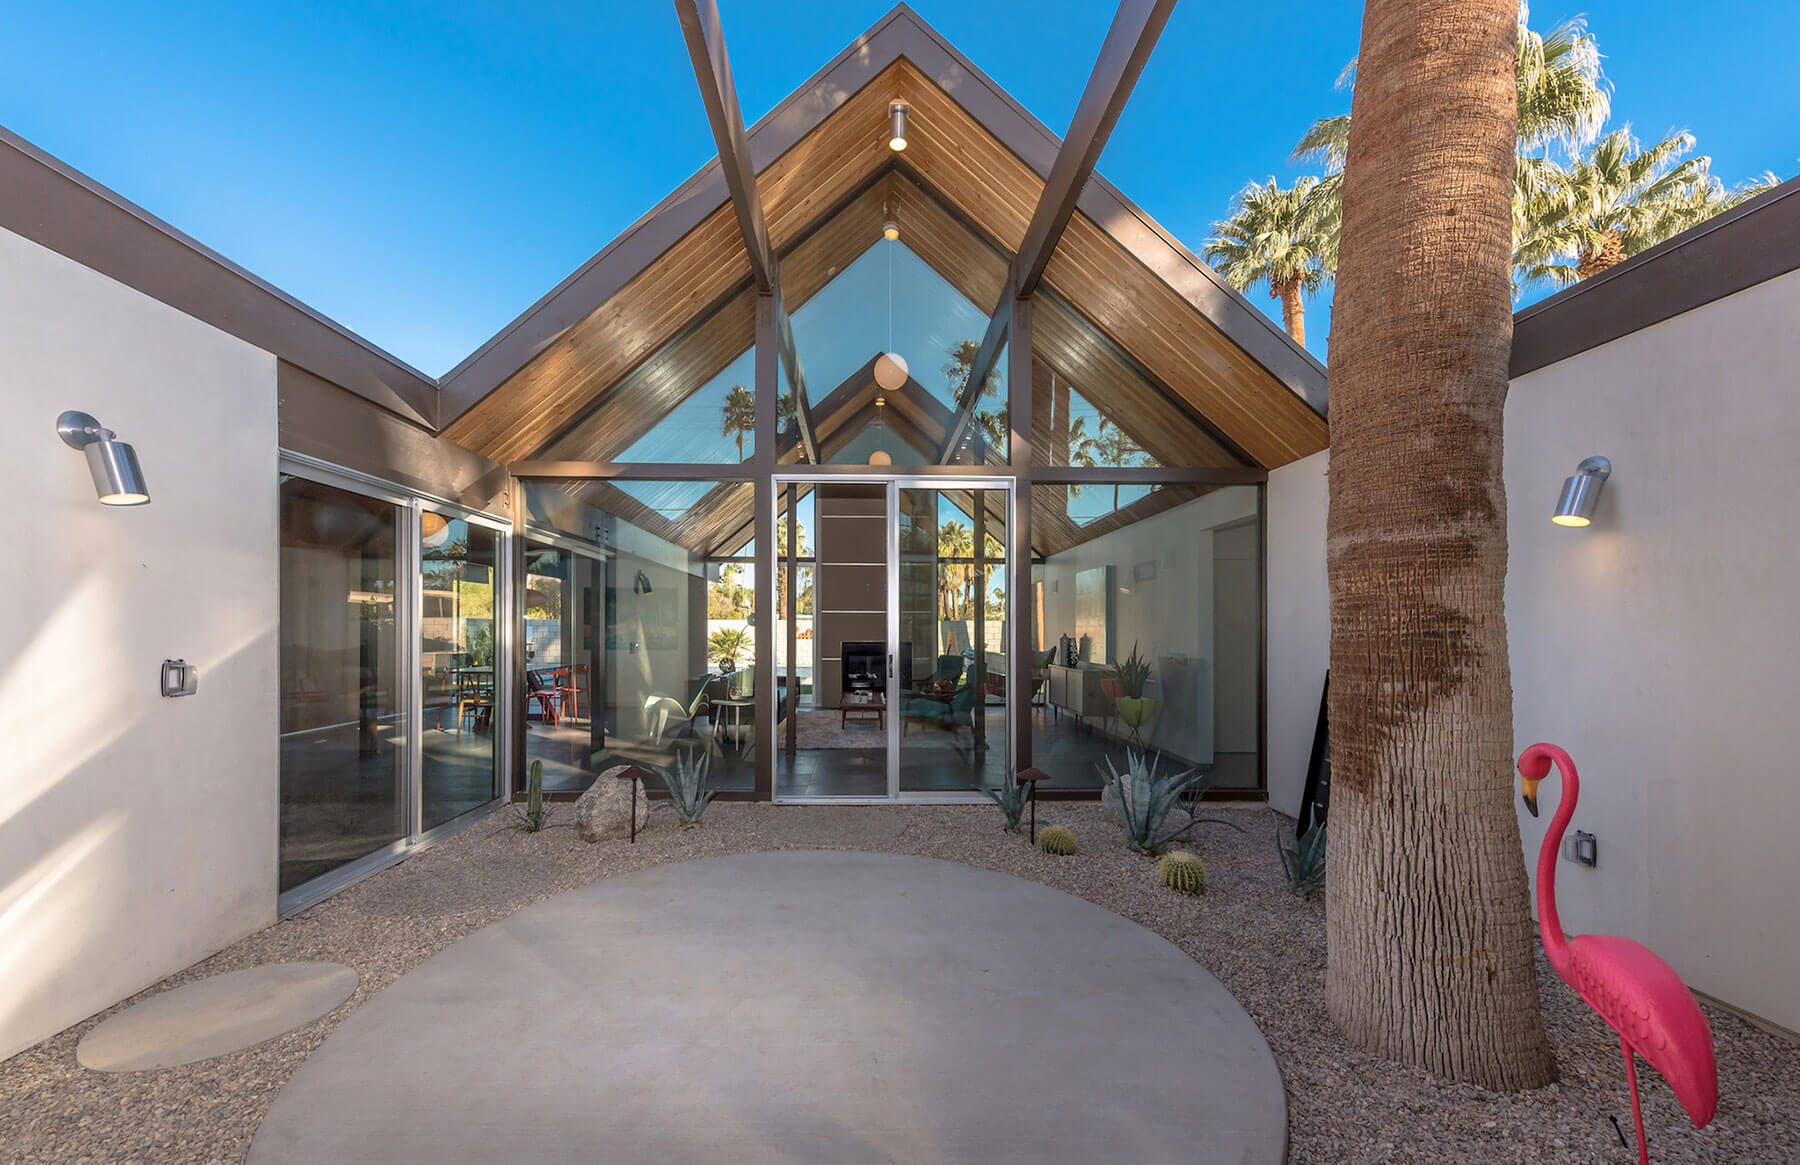 The Desert Eichler 2 Atrium